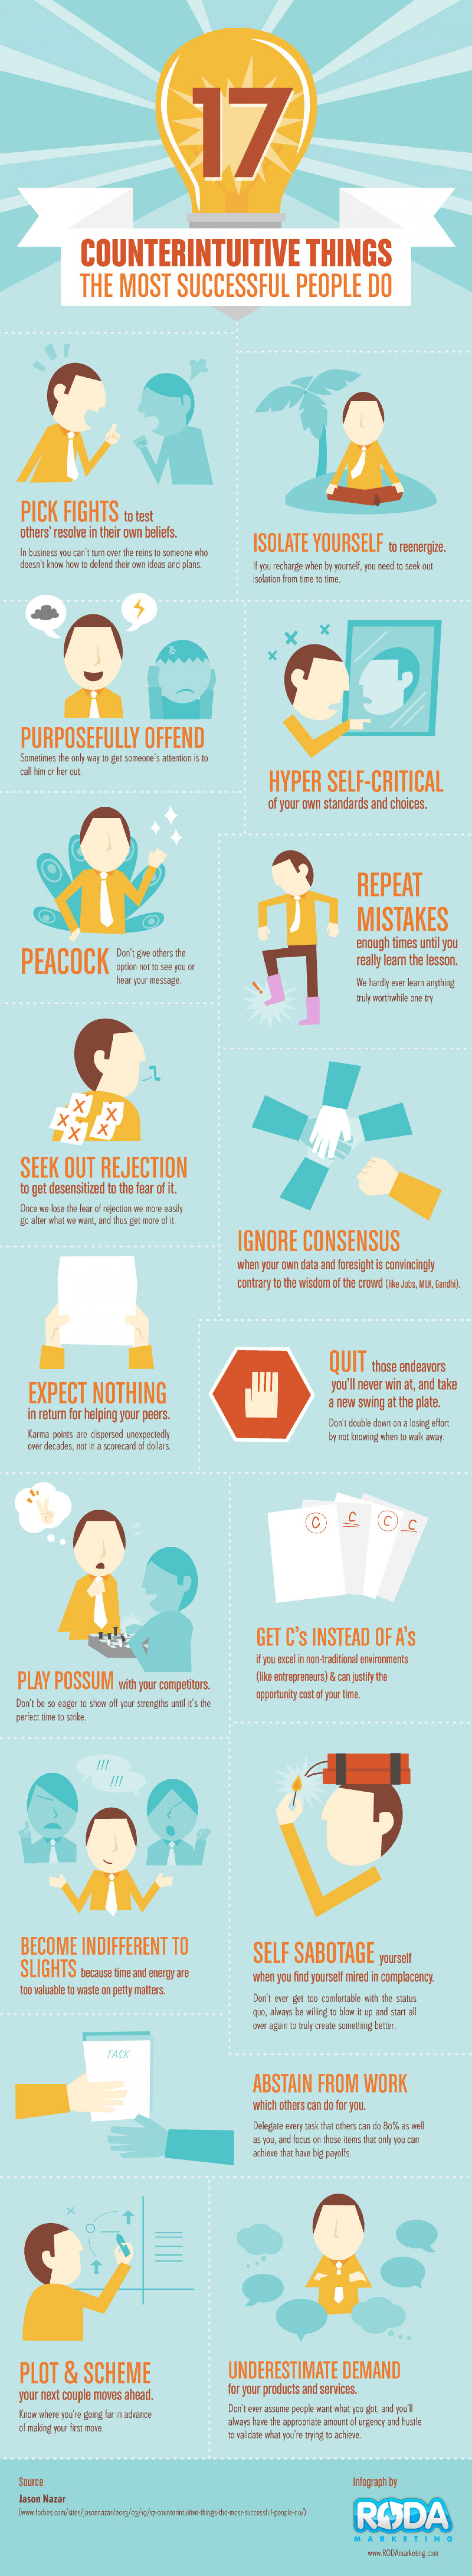 17 Counterintuitive Things Successful People Do Infographic